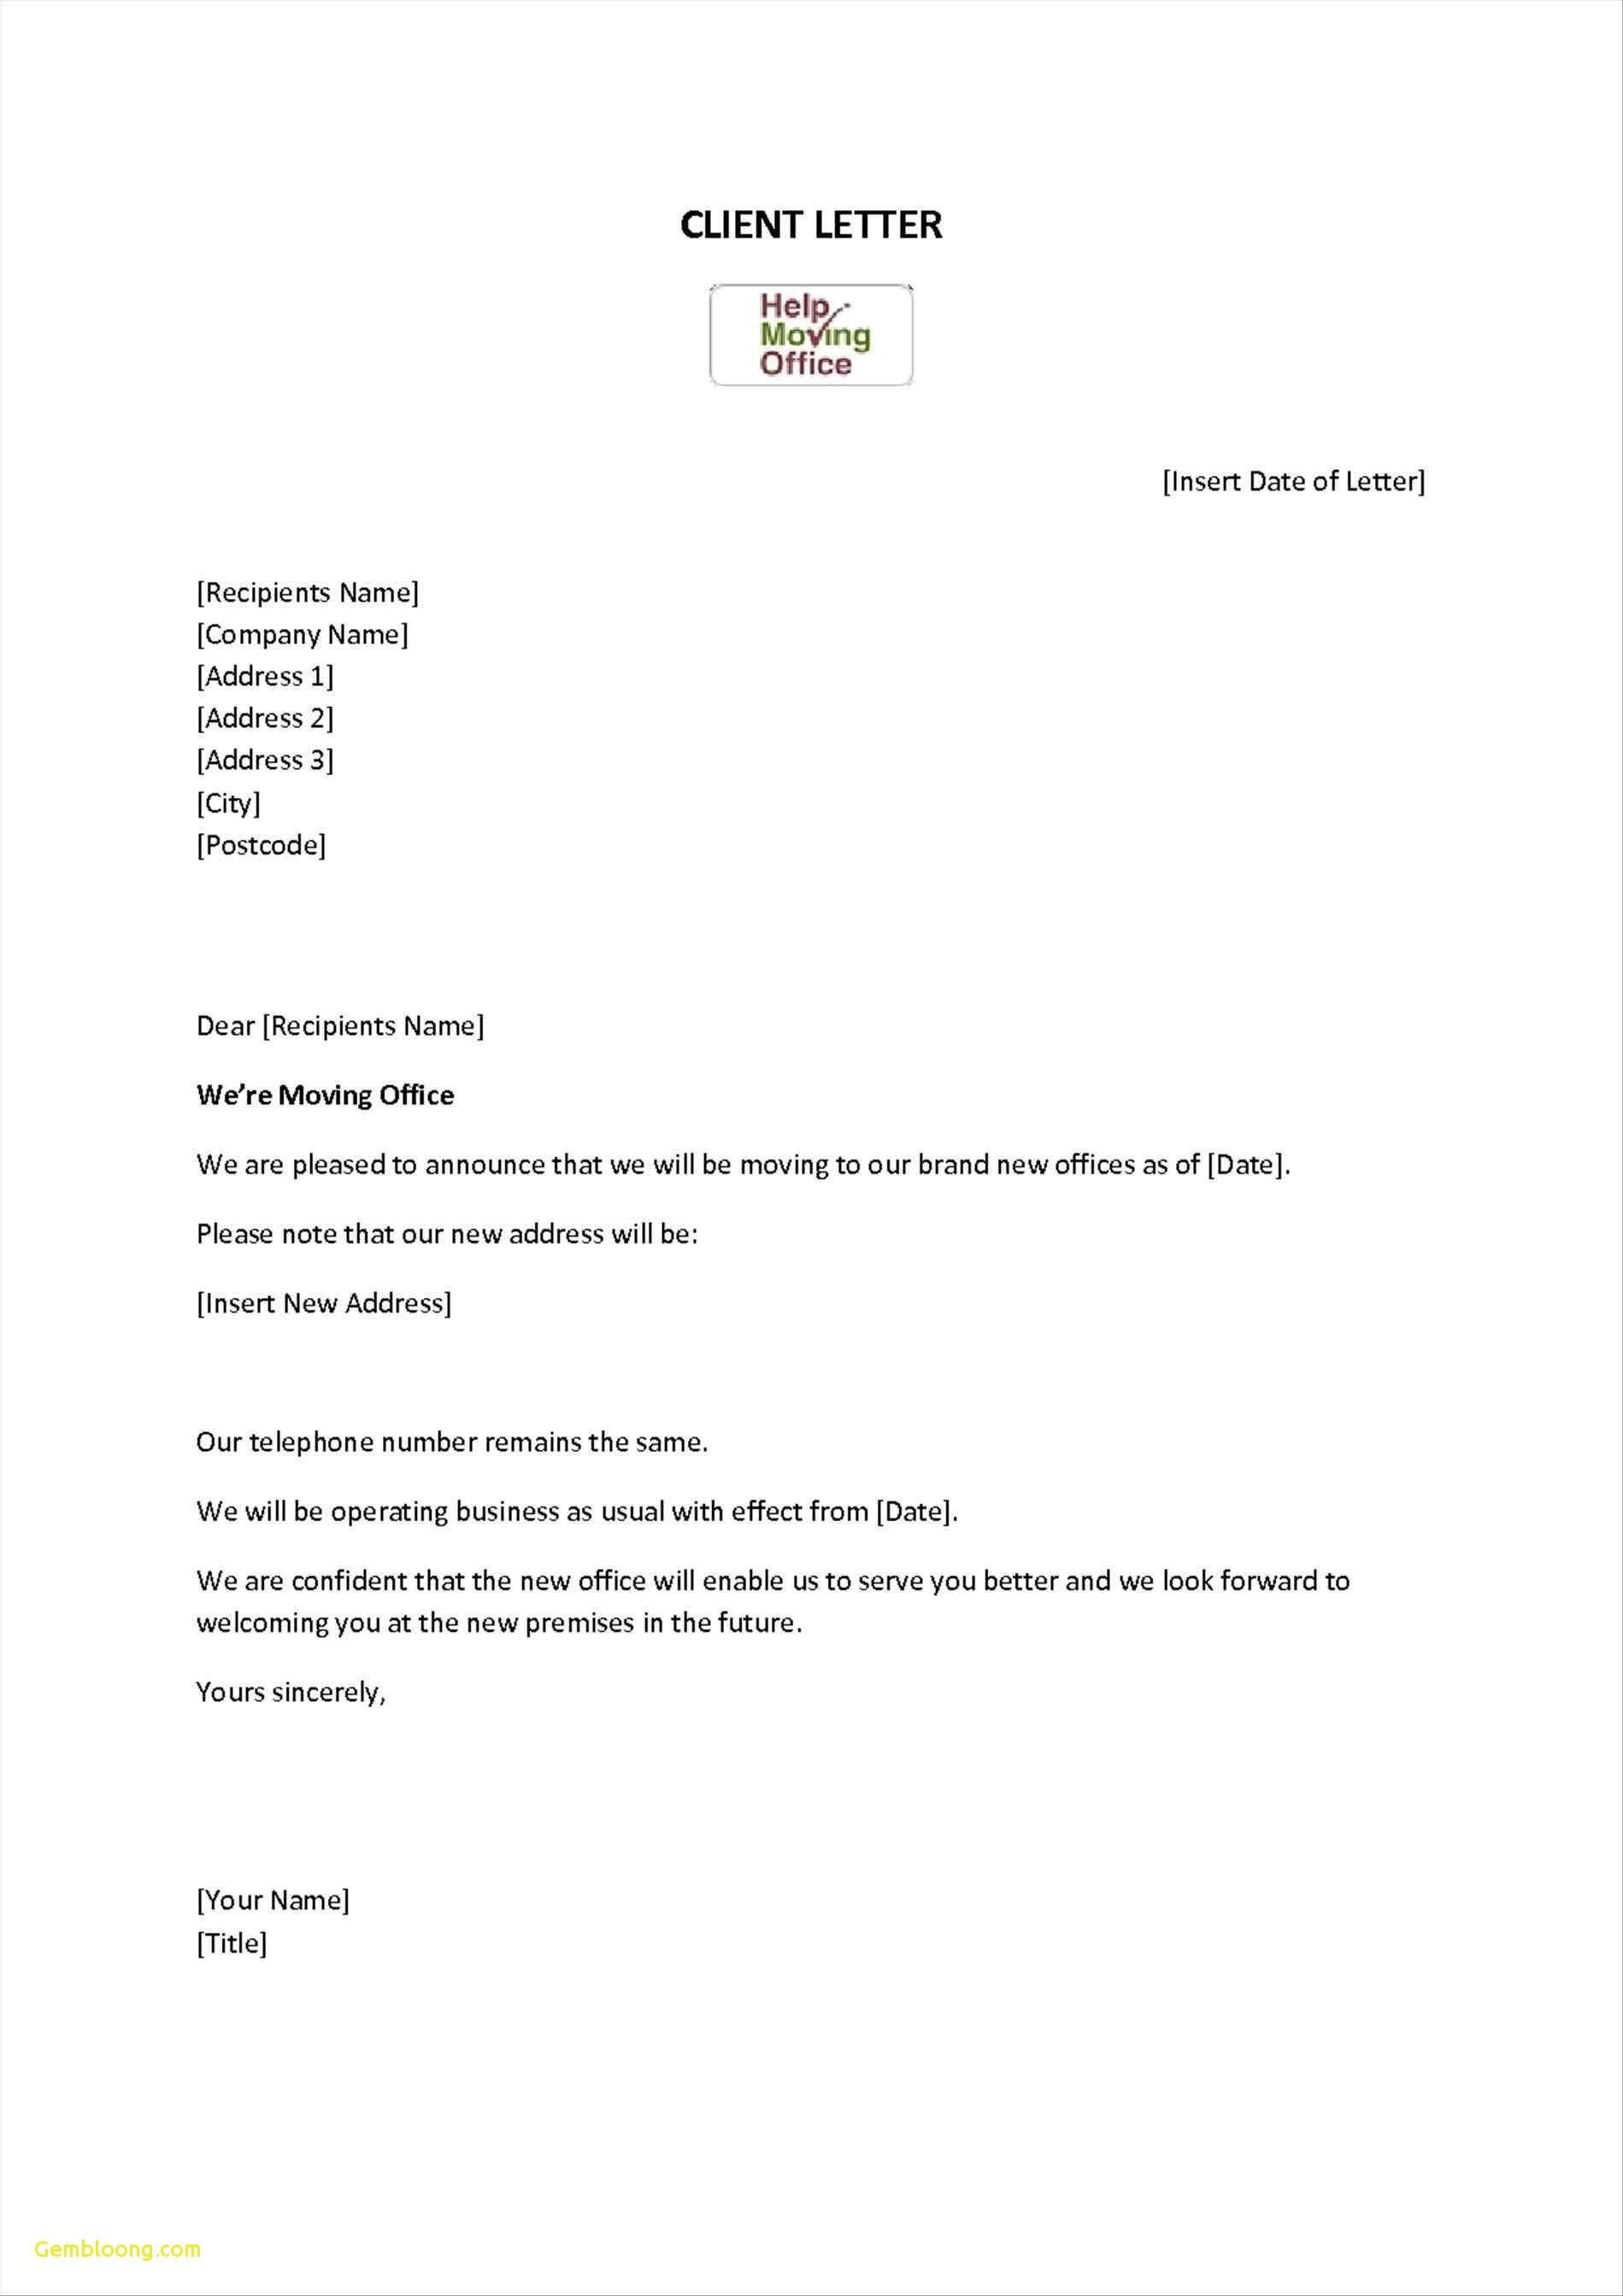 Valid Letter format for Change Of Telephone Number (With